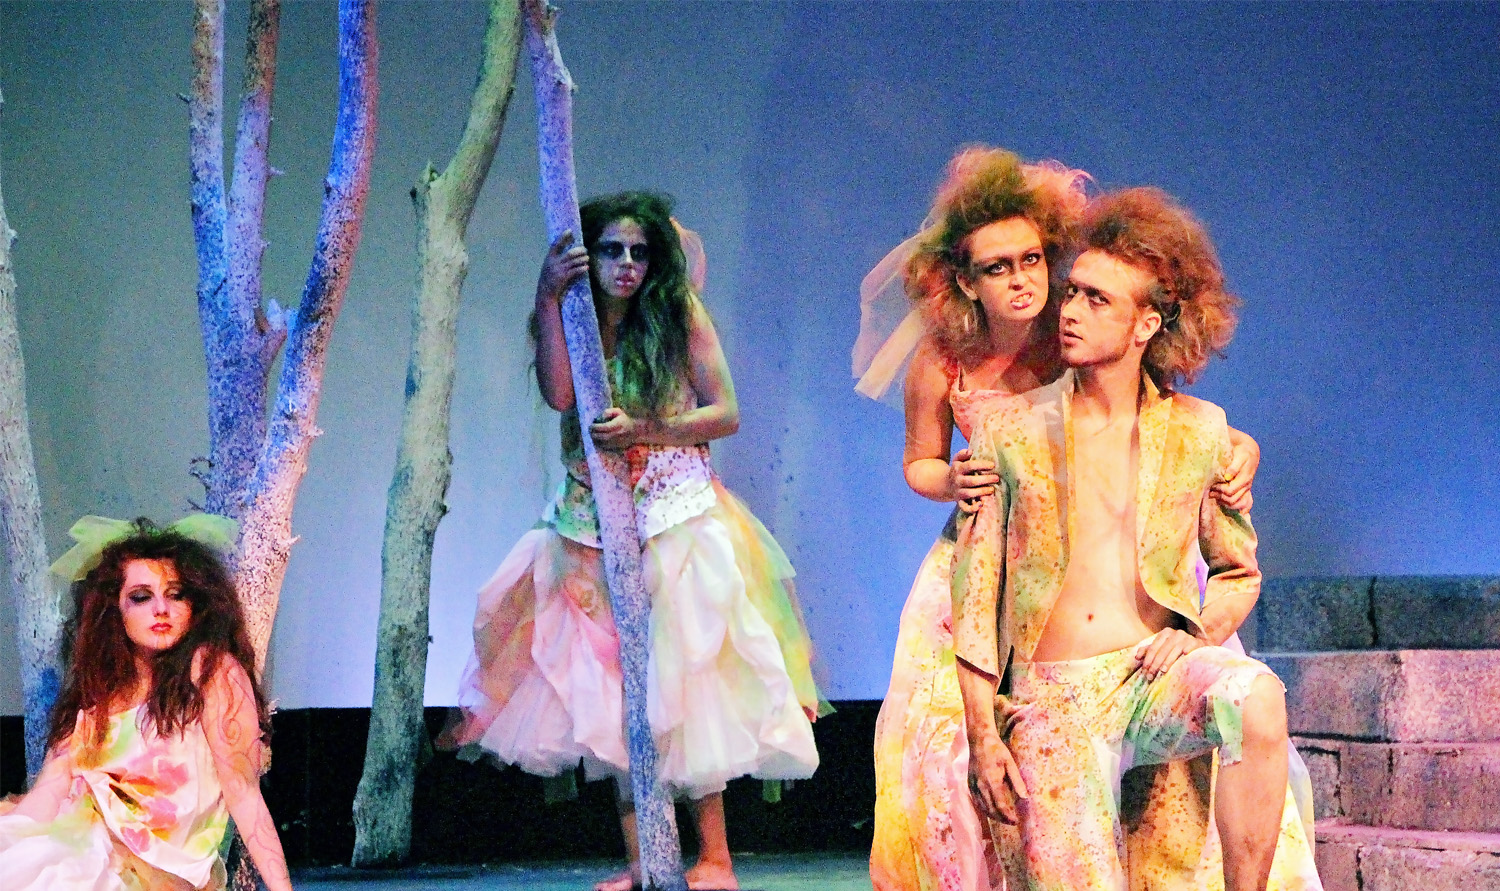 Midsummer night s dream performed by Butler's theatre program